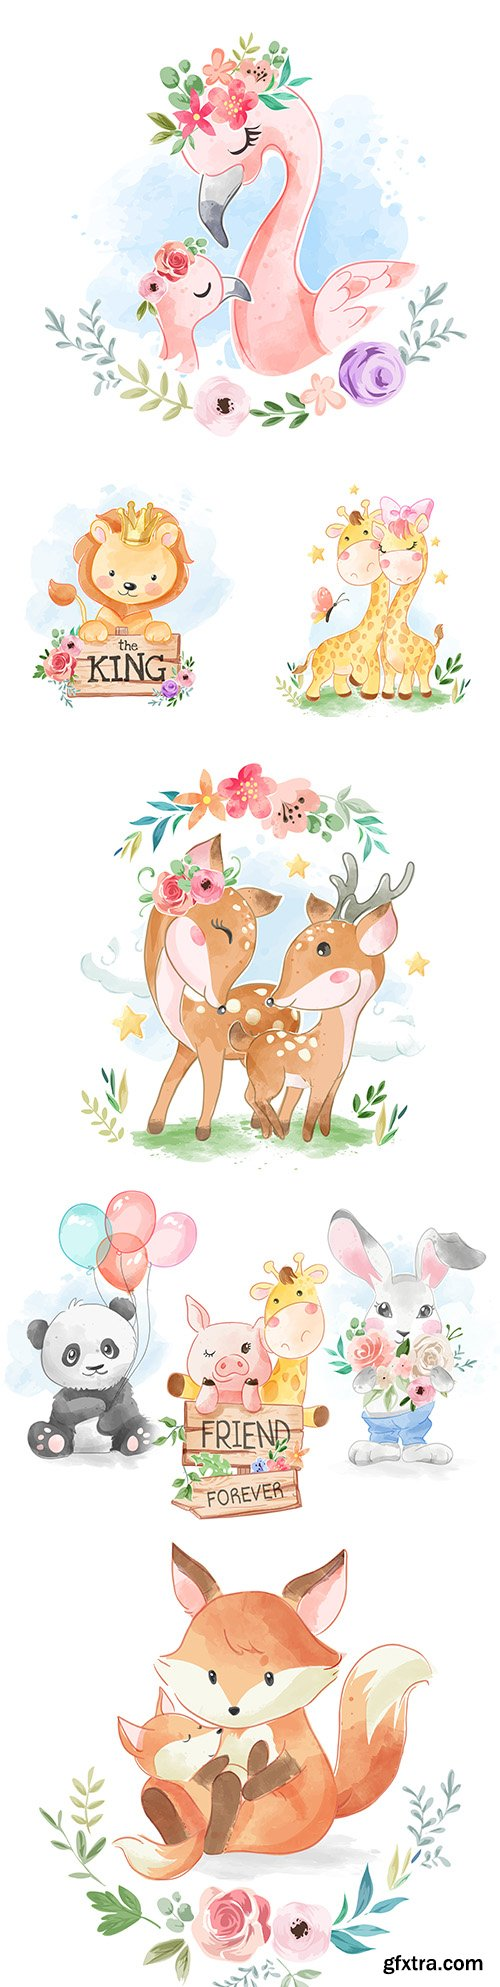 Funny animals drawing cartoon watercolor illustrations 26